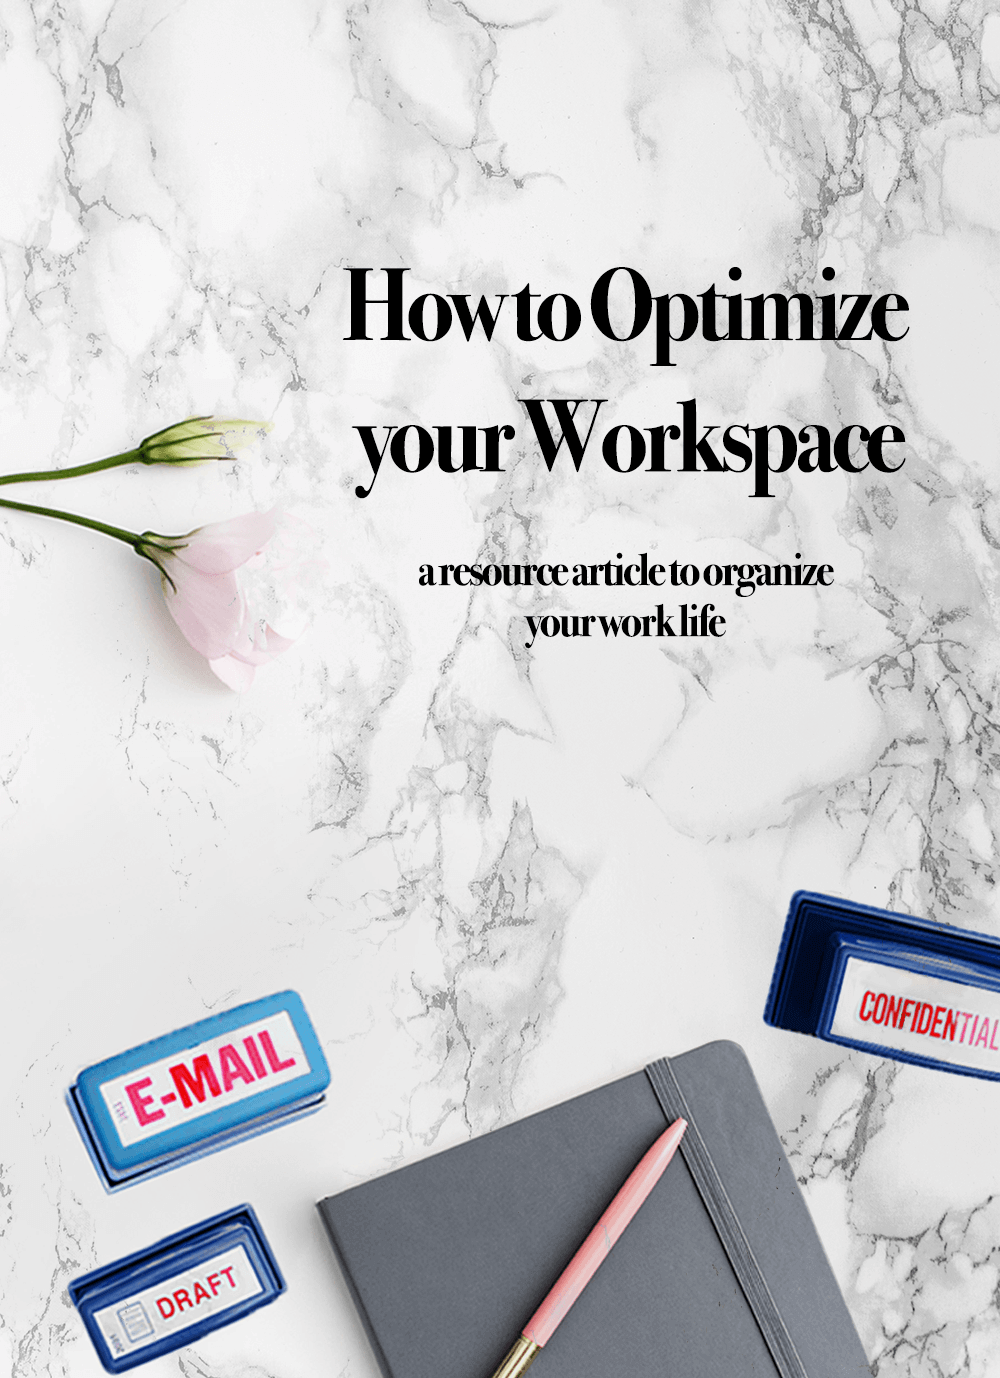 How to Optimize your Workspace